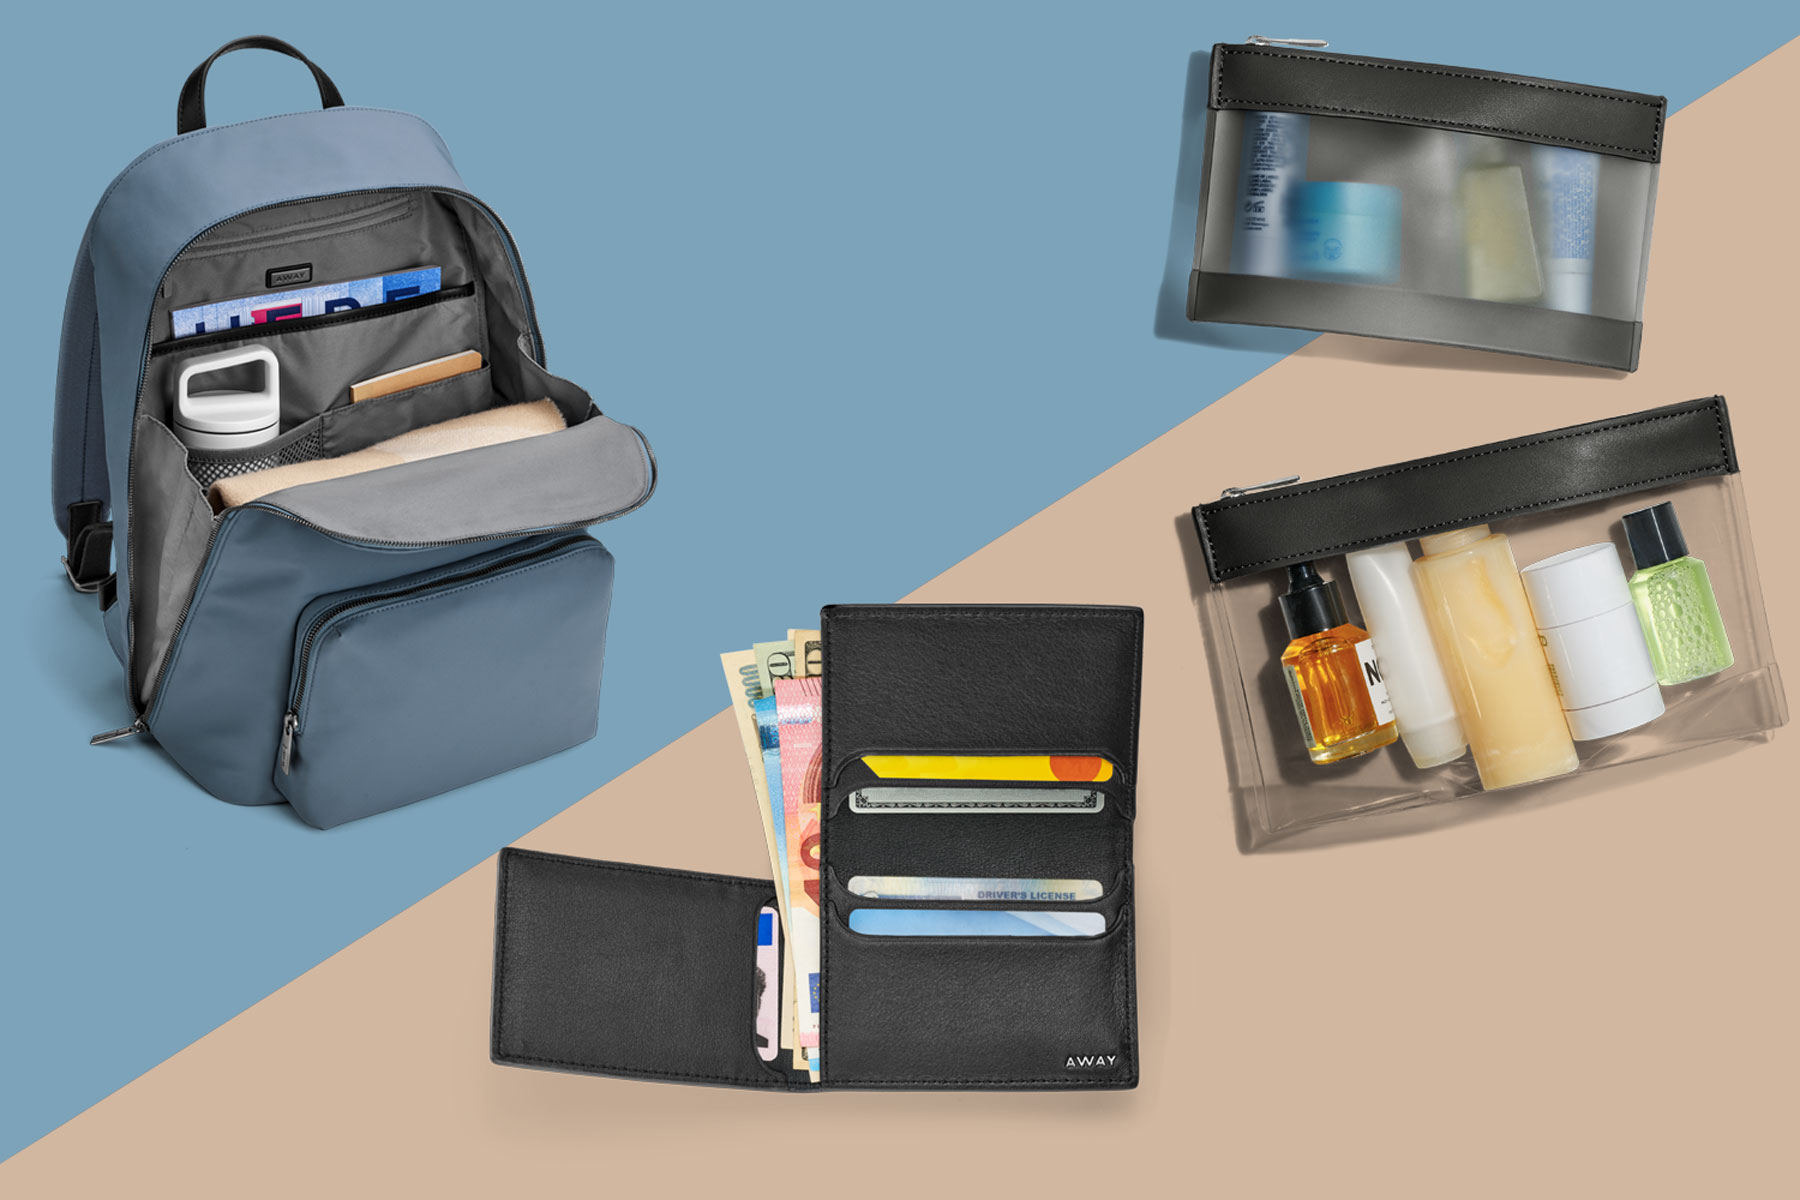 Various travel bags and accessories